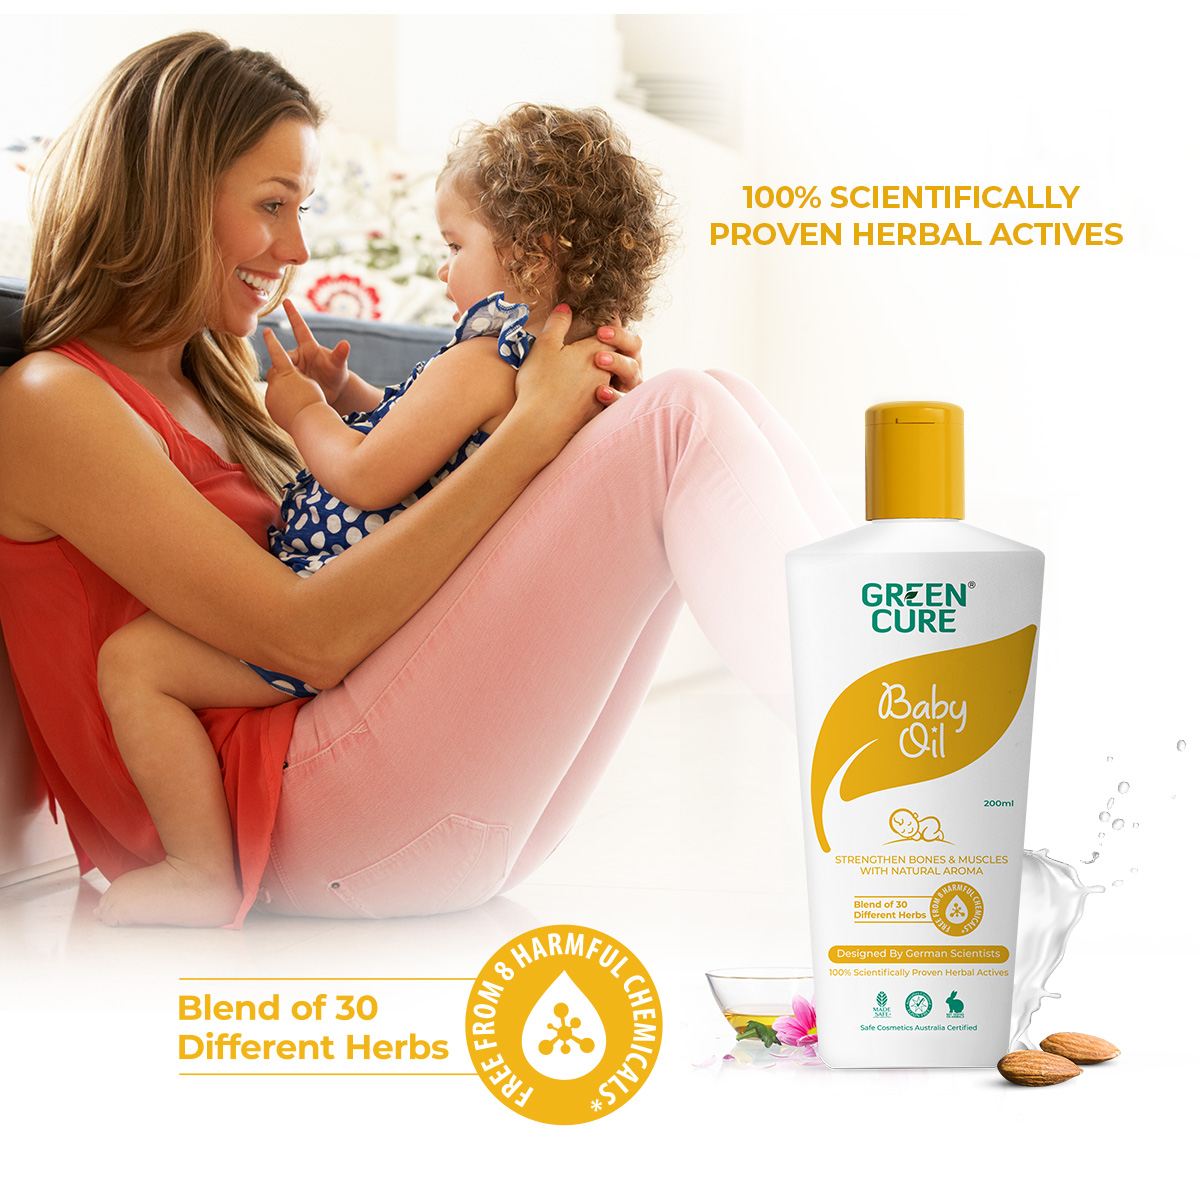 Greencure Natural Baby Oil Strengthens Bones & Muscles, Good for Blood Circulation (200ml)